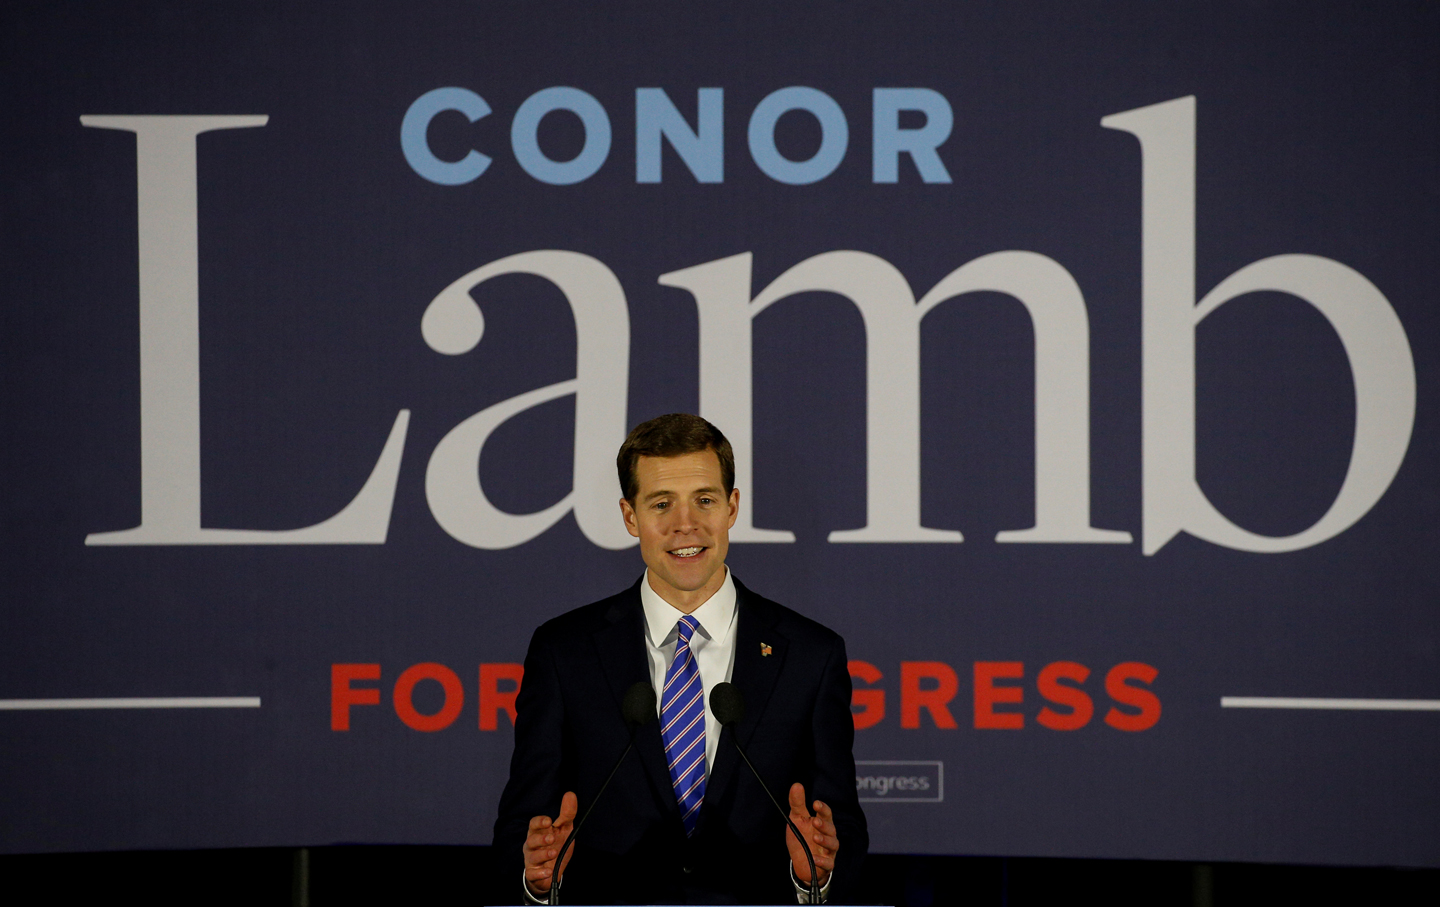 Conor-Lamb-sign-rtr-img